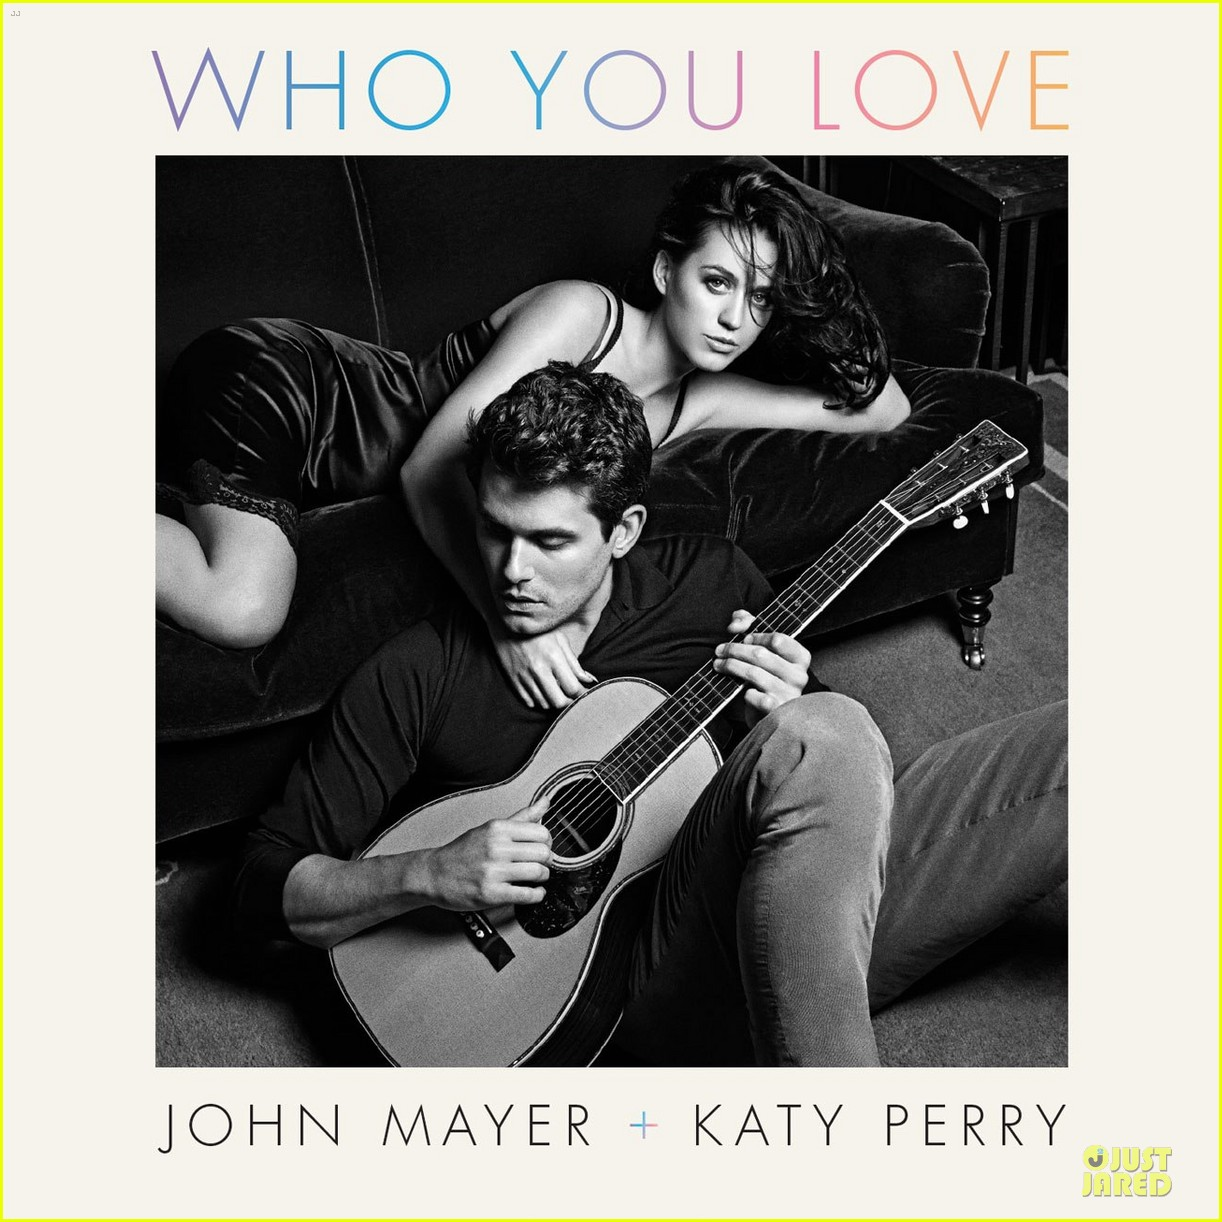 katy perry john mayer who you love artwork 053003604